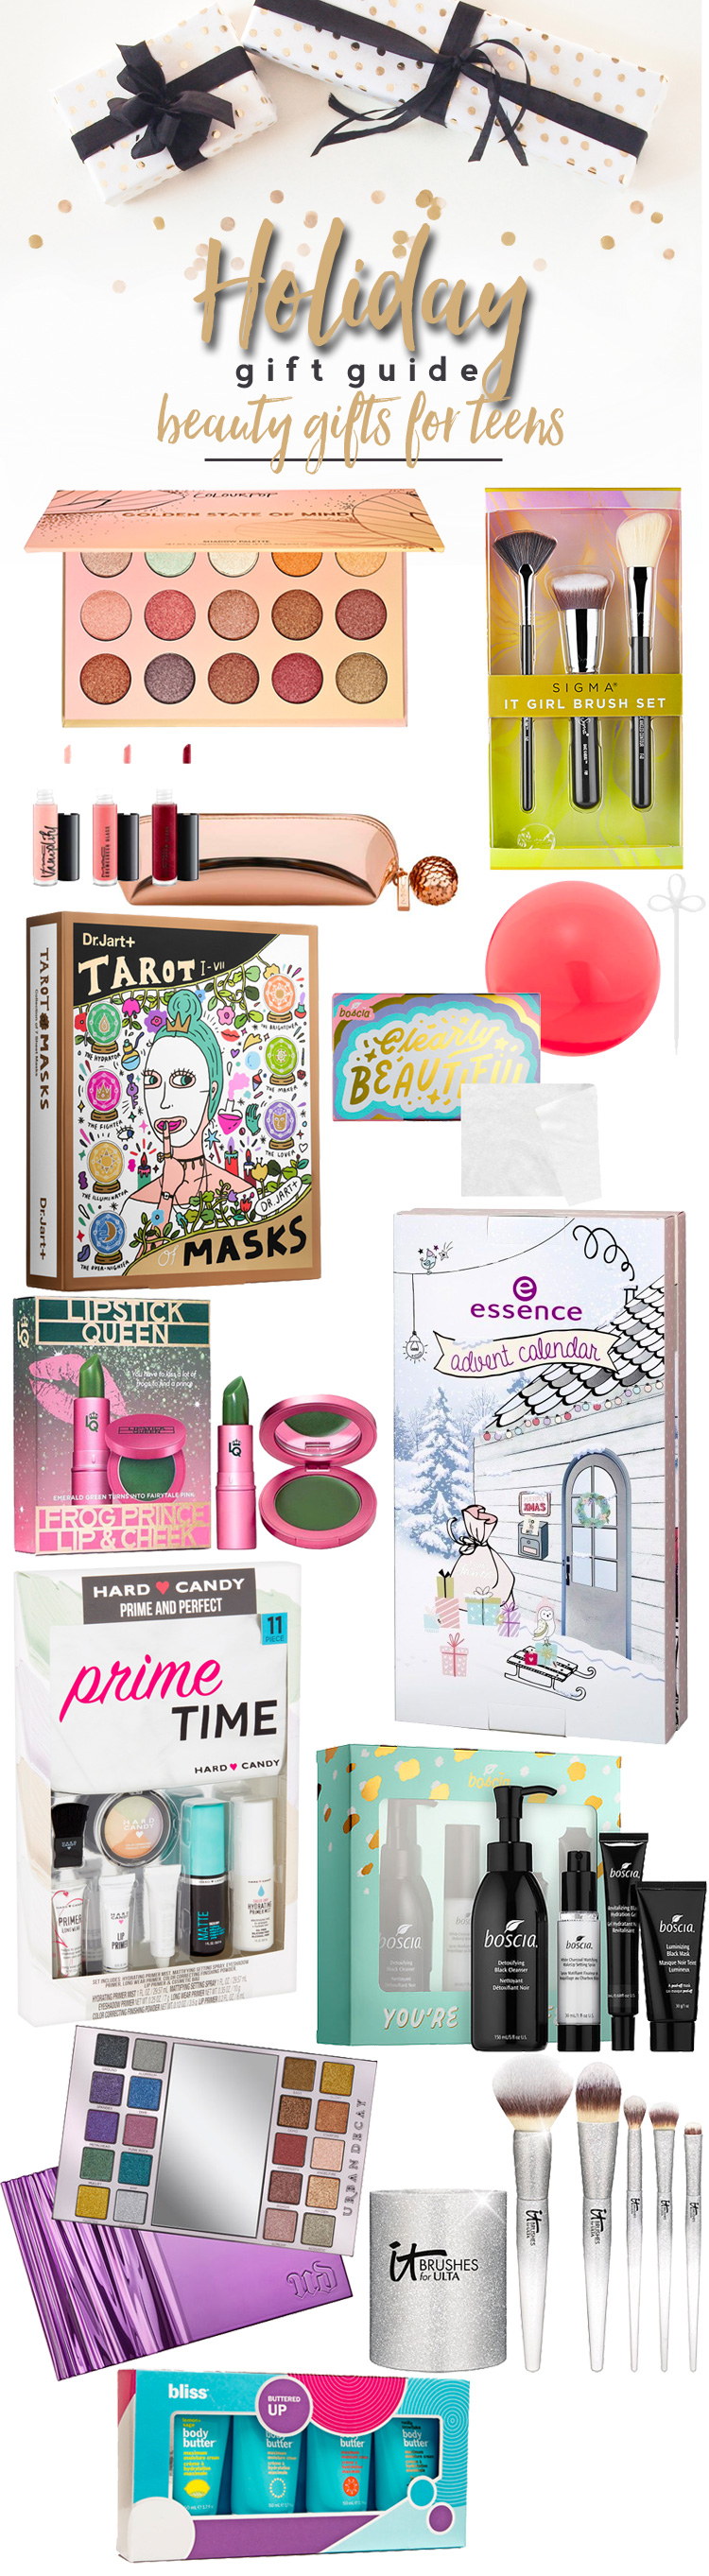 Best Beauty Gifts for Teens